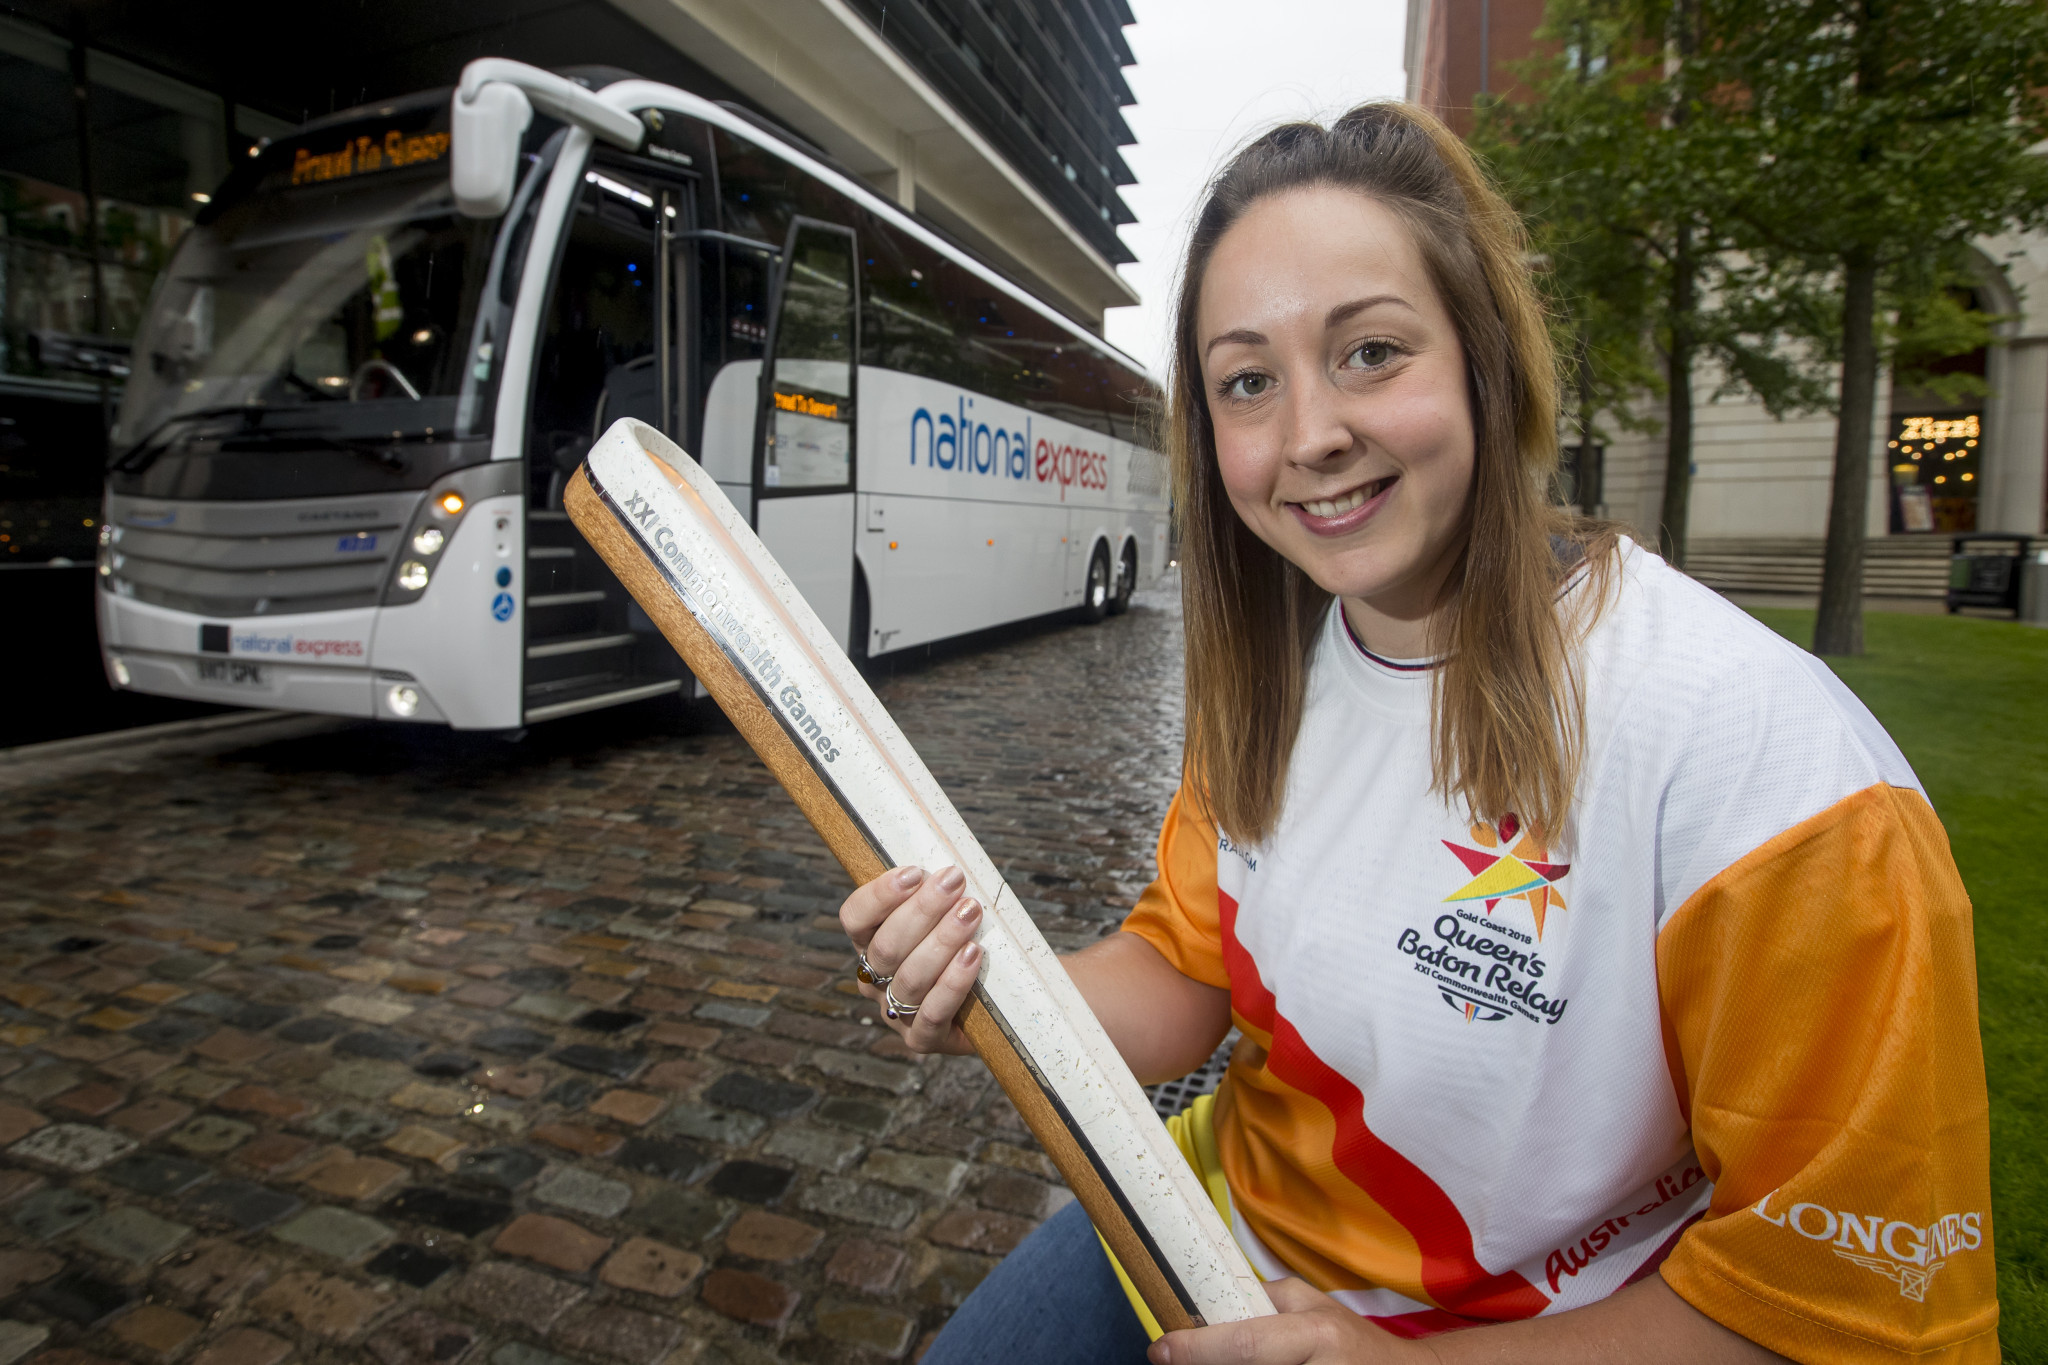 National Express will continue to support Commonwealth Games England until Gold Coast 2018 ©National Express